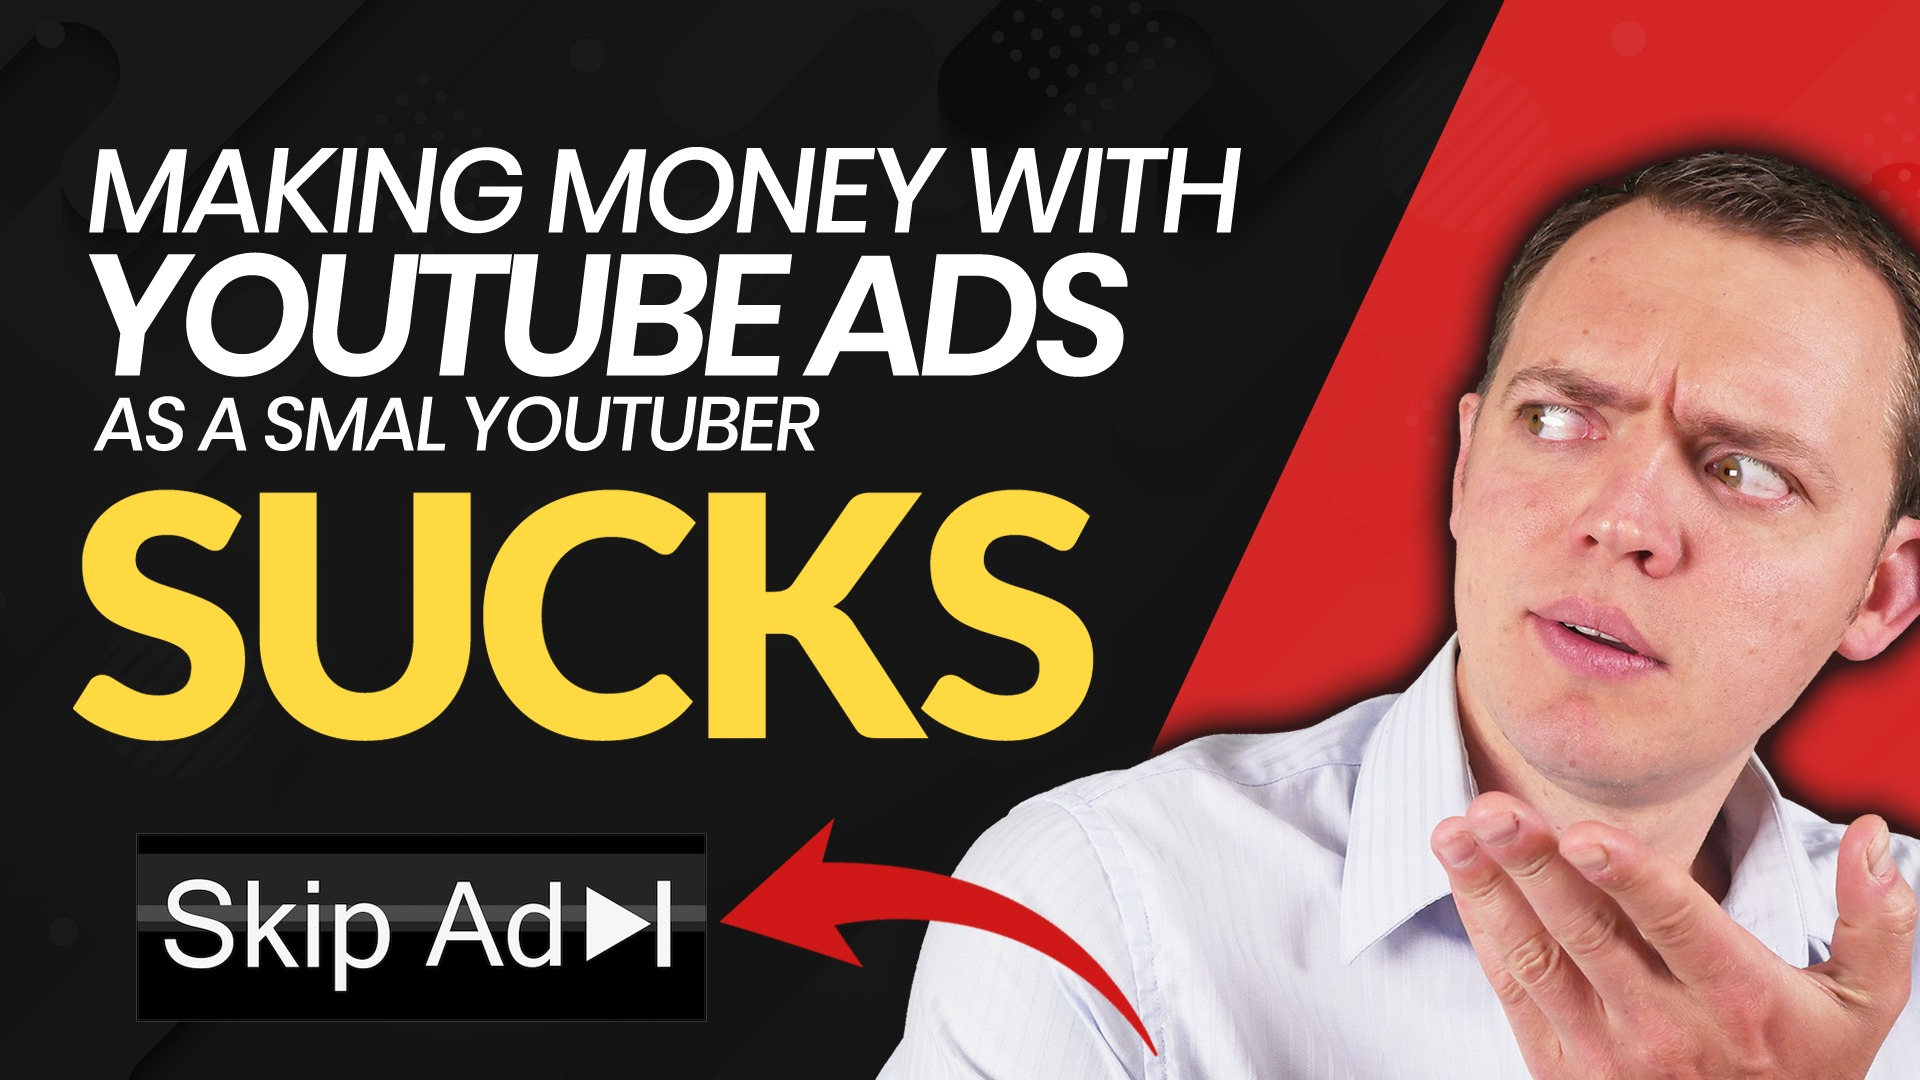 Why Getting Paid from YouTube Ads Sucks As a Small YouTuber